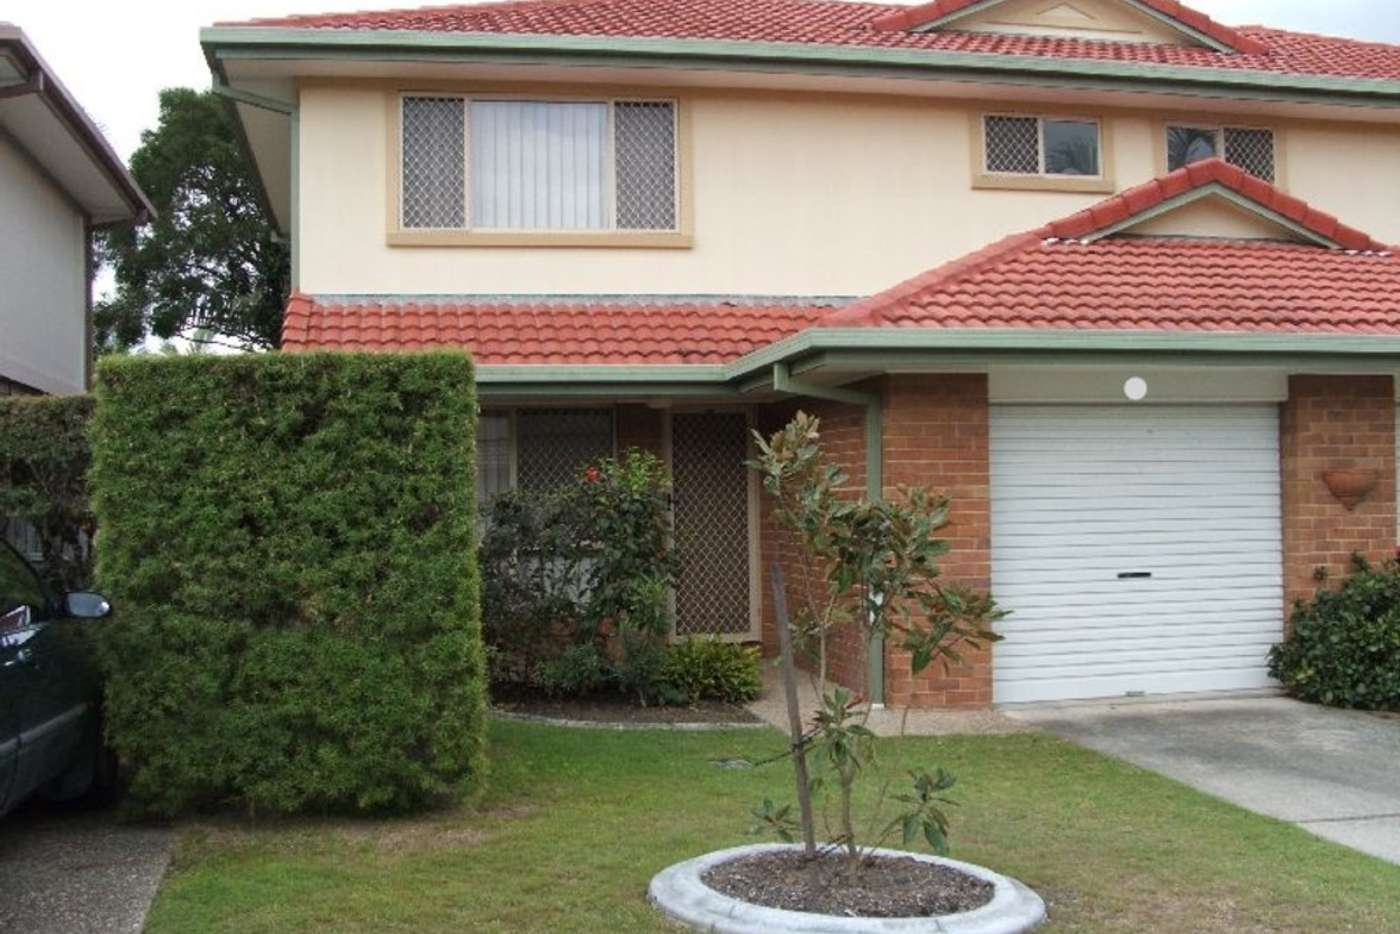 Main view of Homely townhouse listing, 77 Nursery Ave, Runcorn QLD 4113